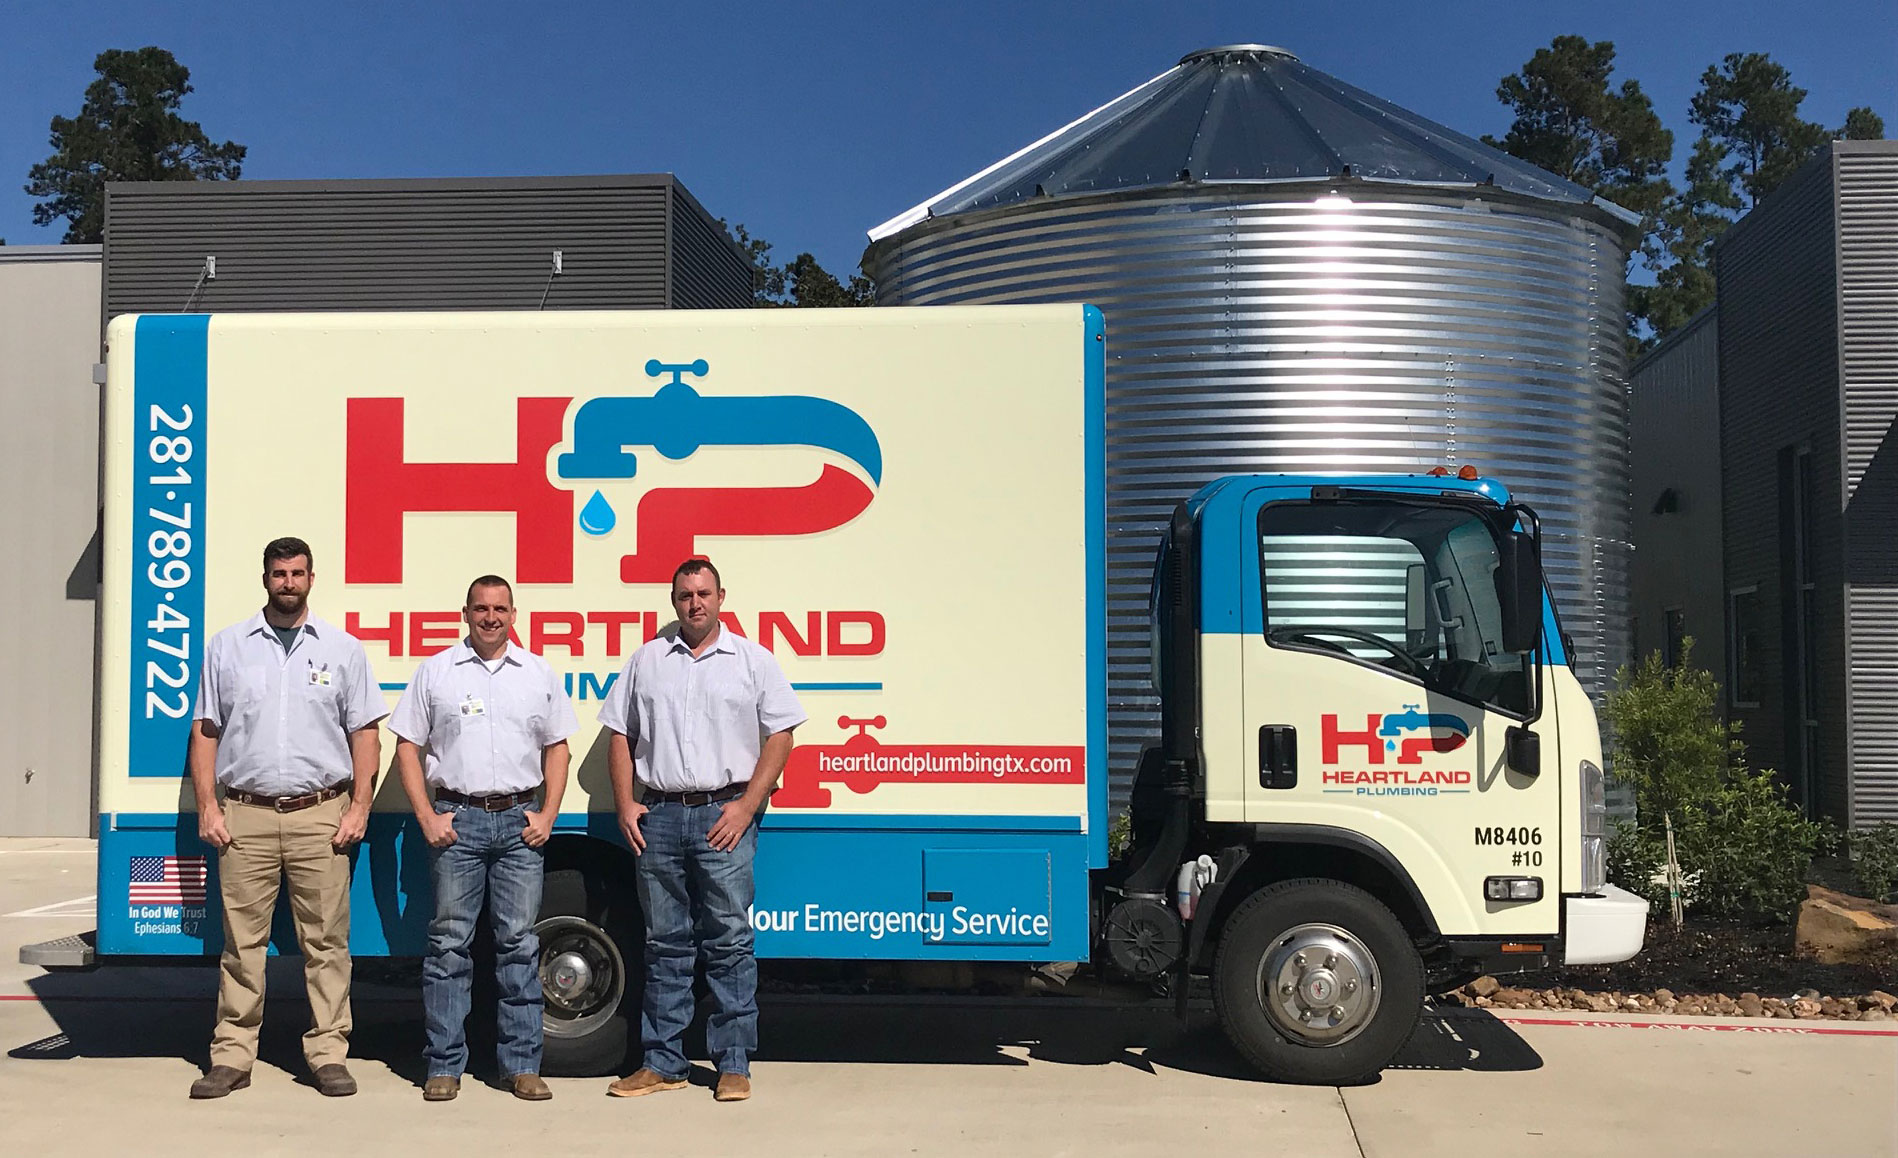 heartland plumbing group photo